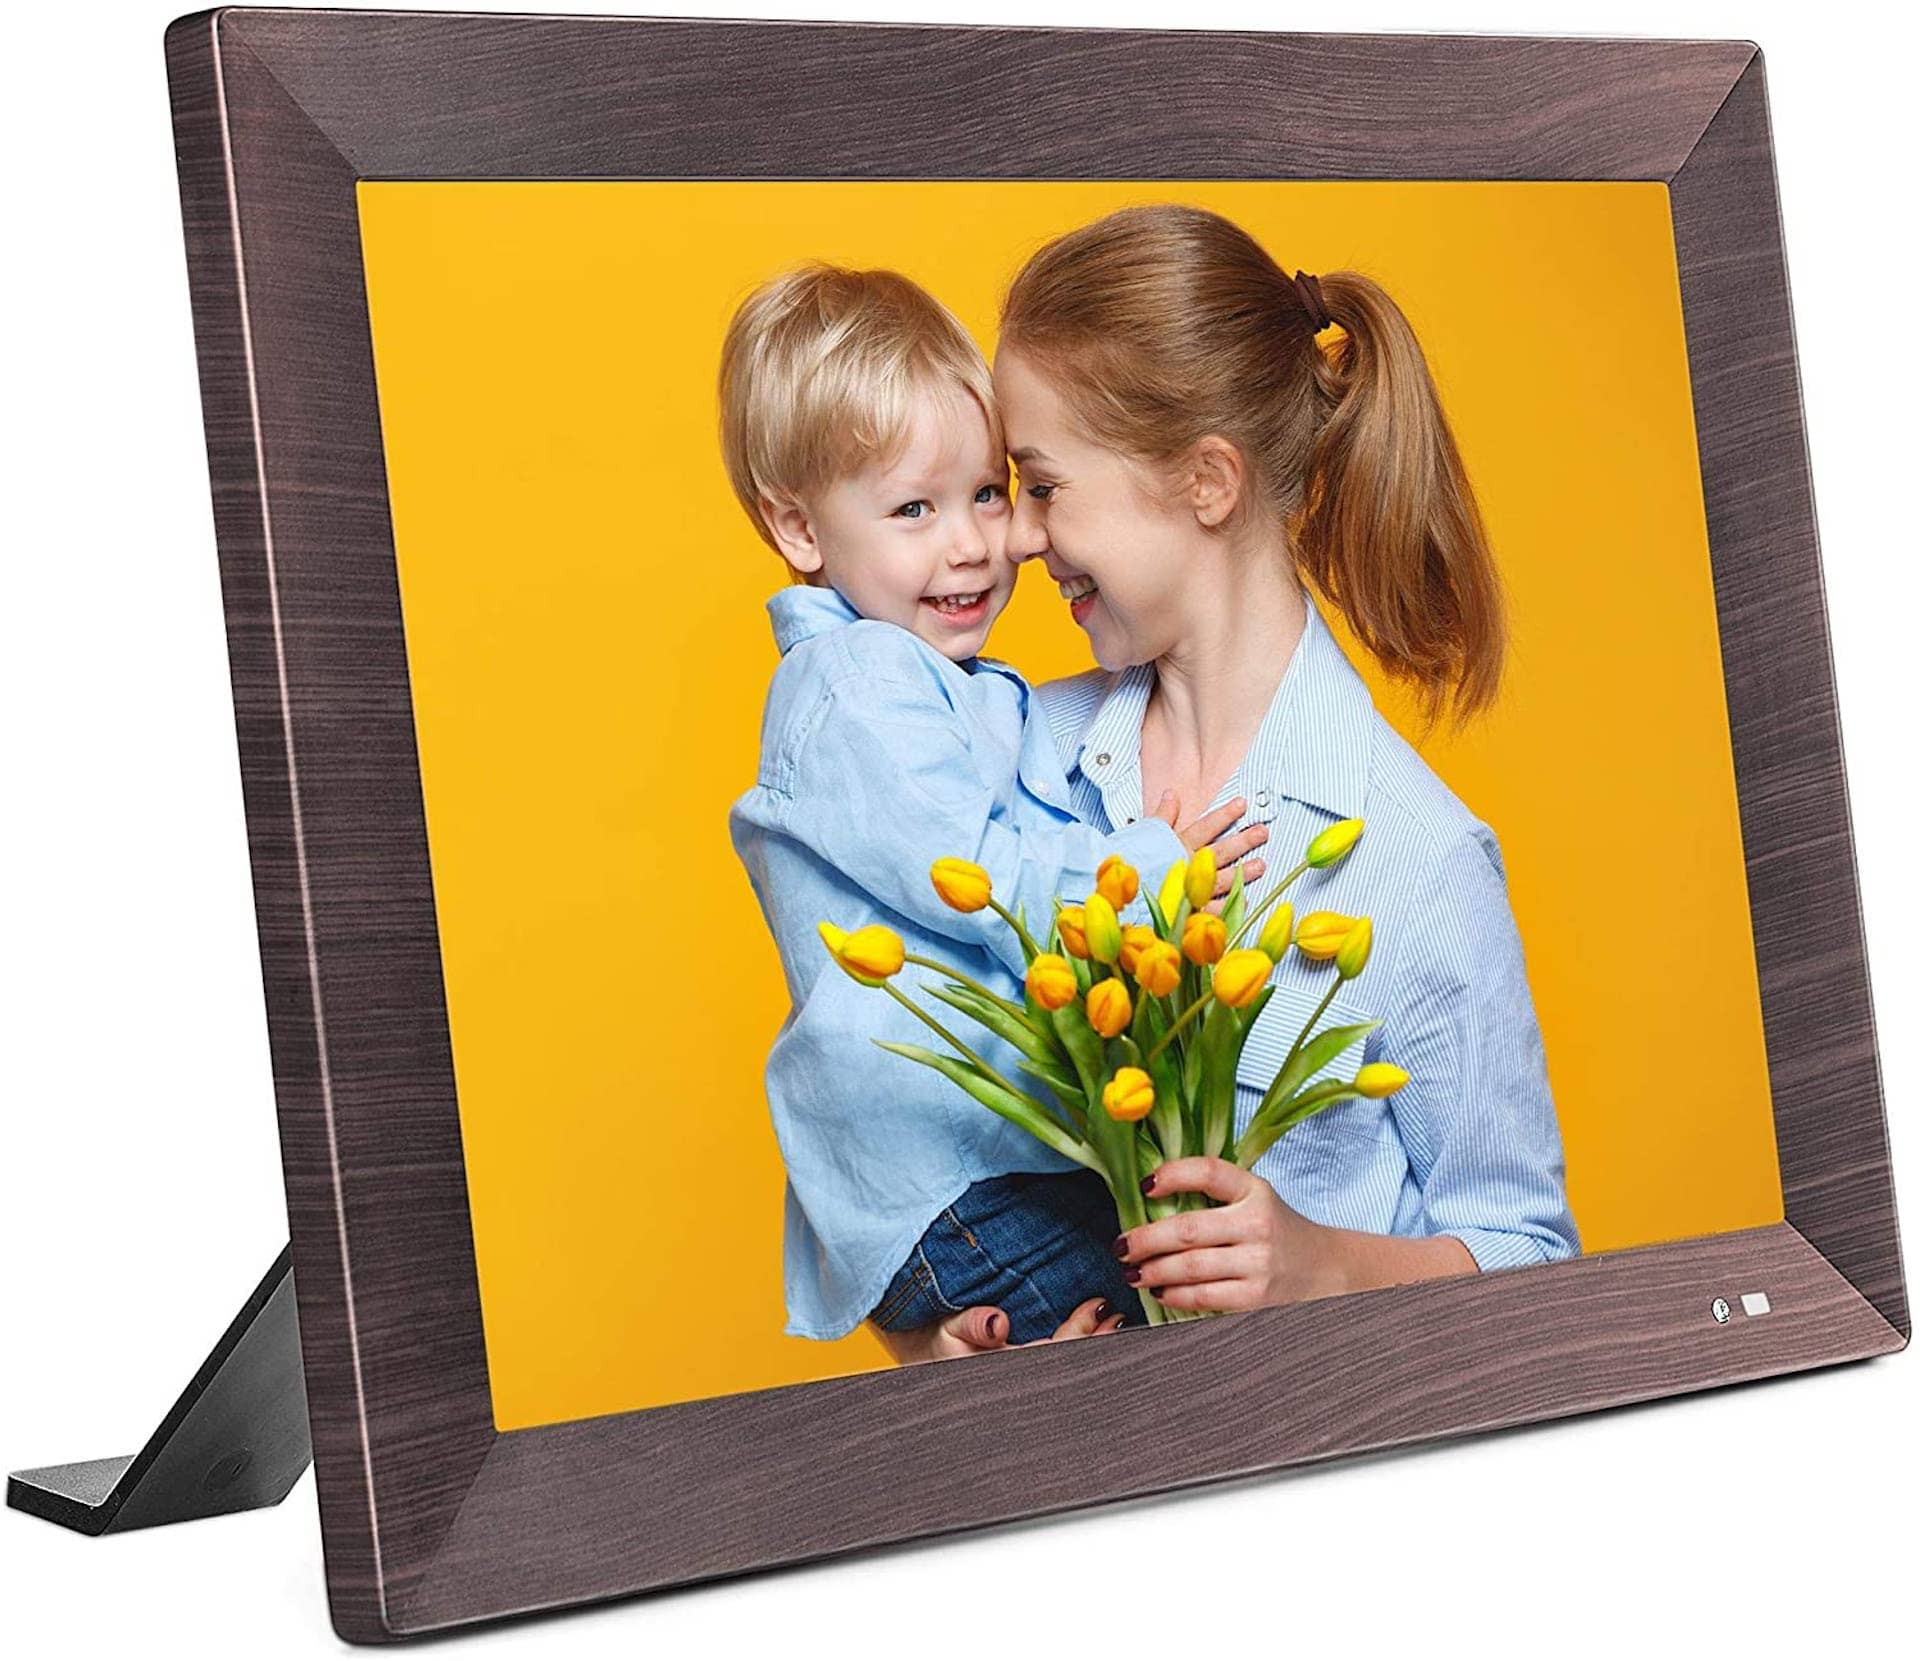 Best Photo Gifts for Photographers - Ideas Photographer Lovers - Photo Album Frame